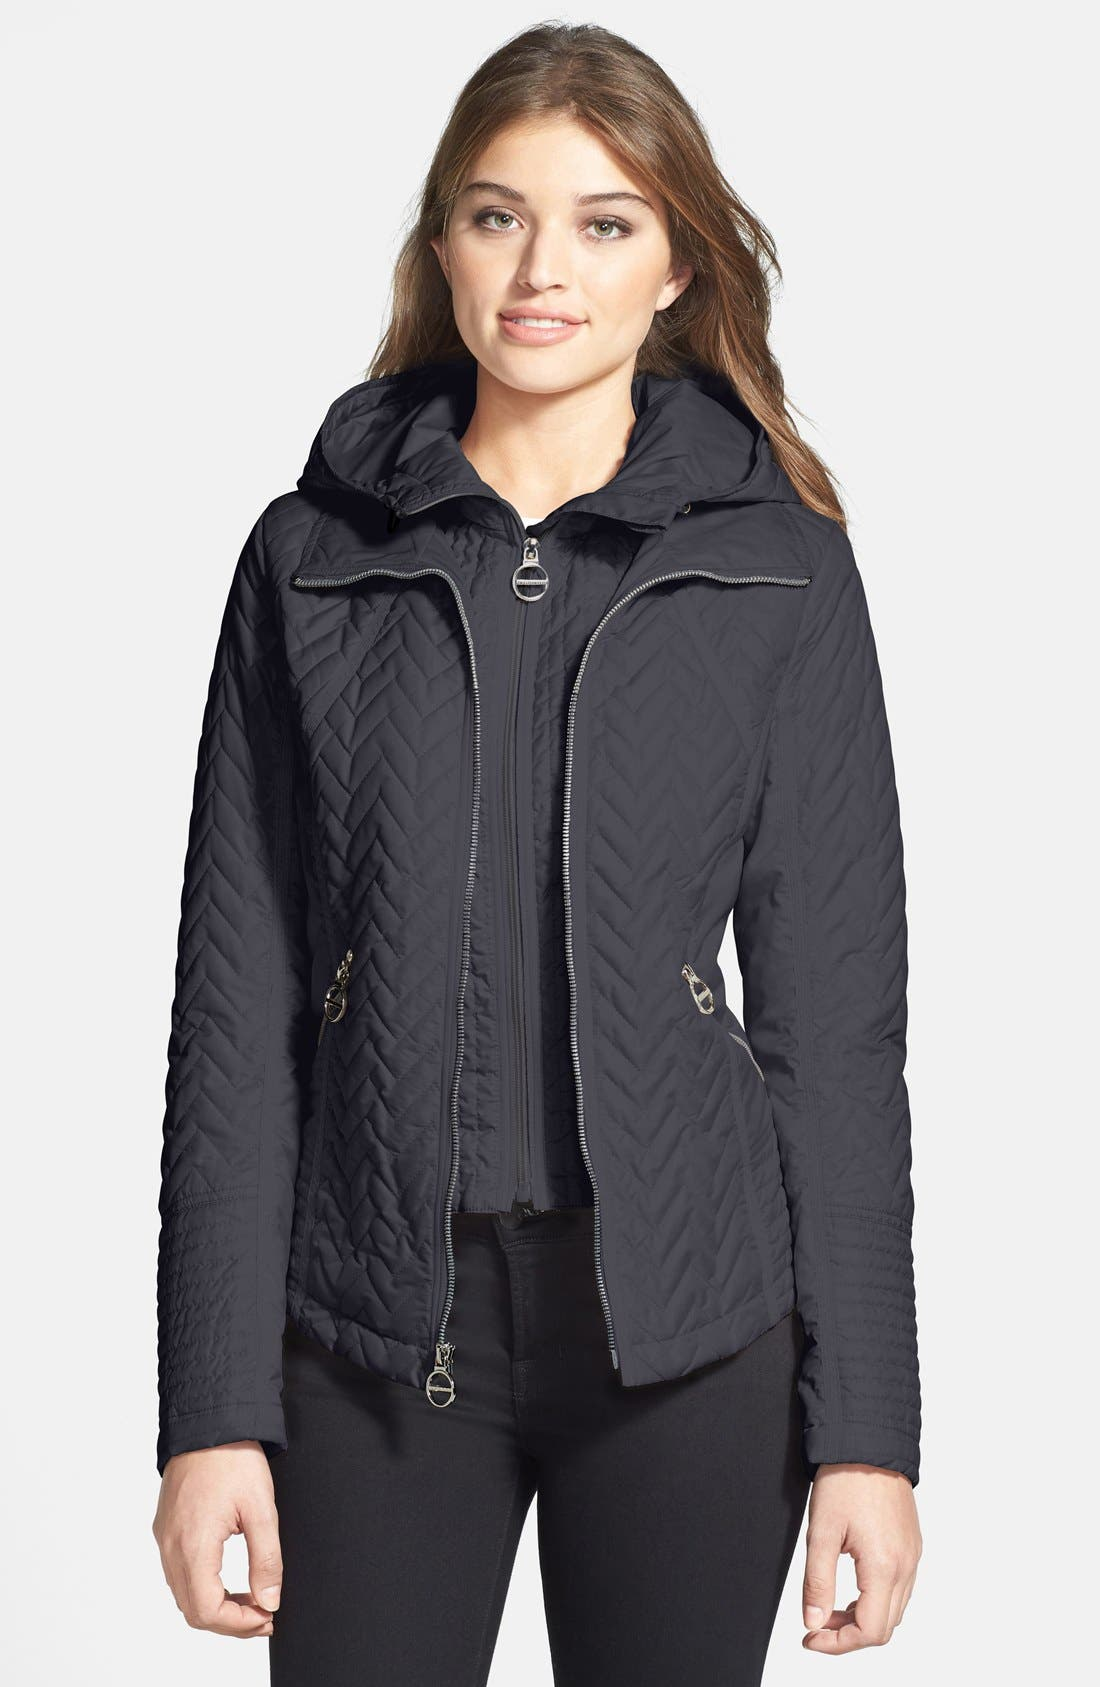 Alternate Image 1 Selected - Laundry by Shelli Segal Quilted Jacket with Removable Hooded Vestie